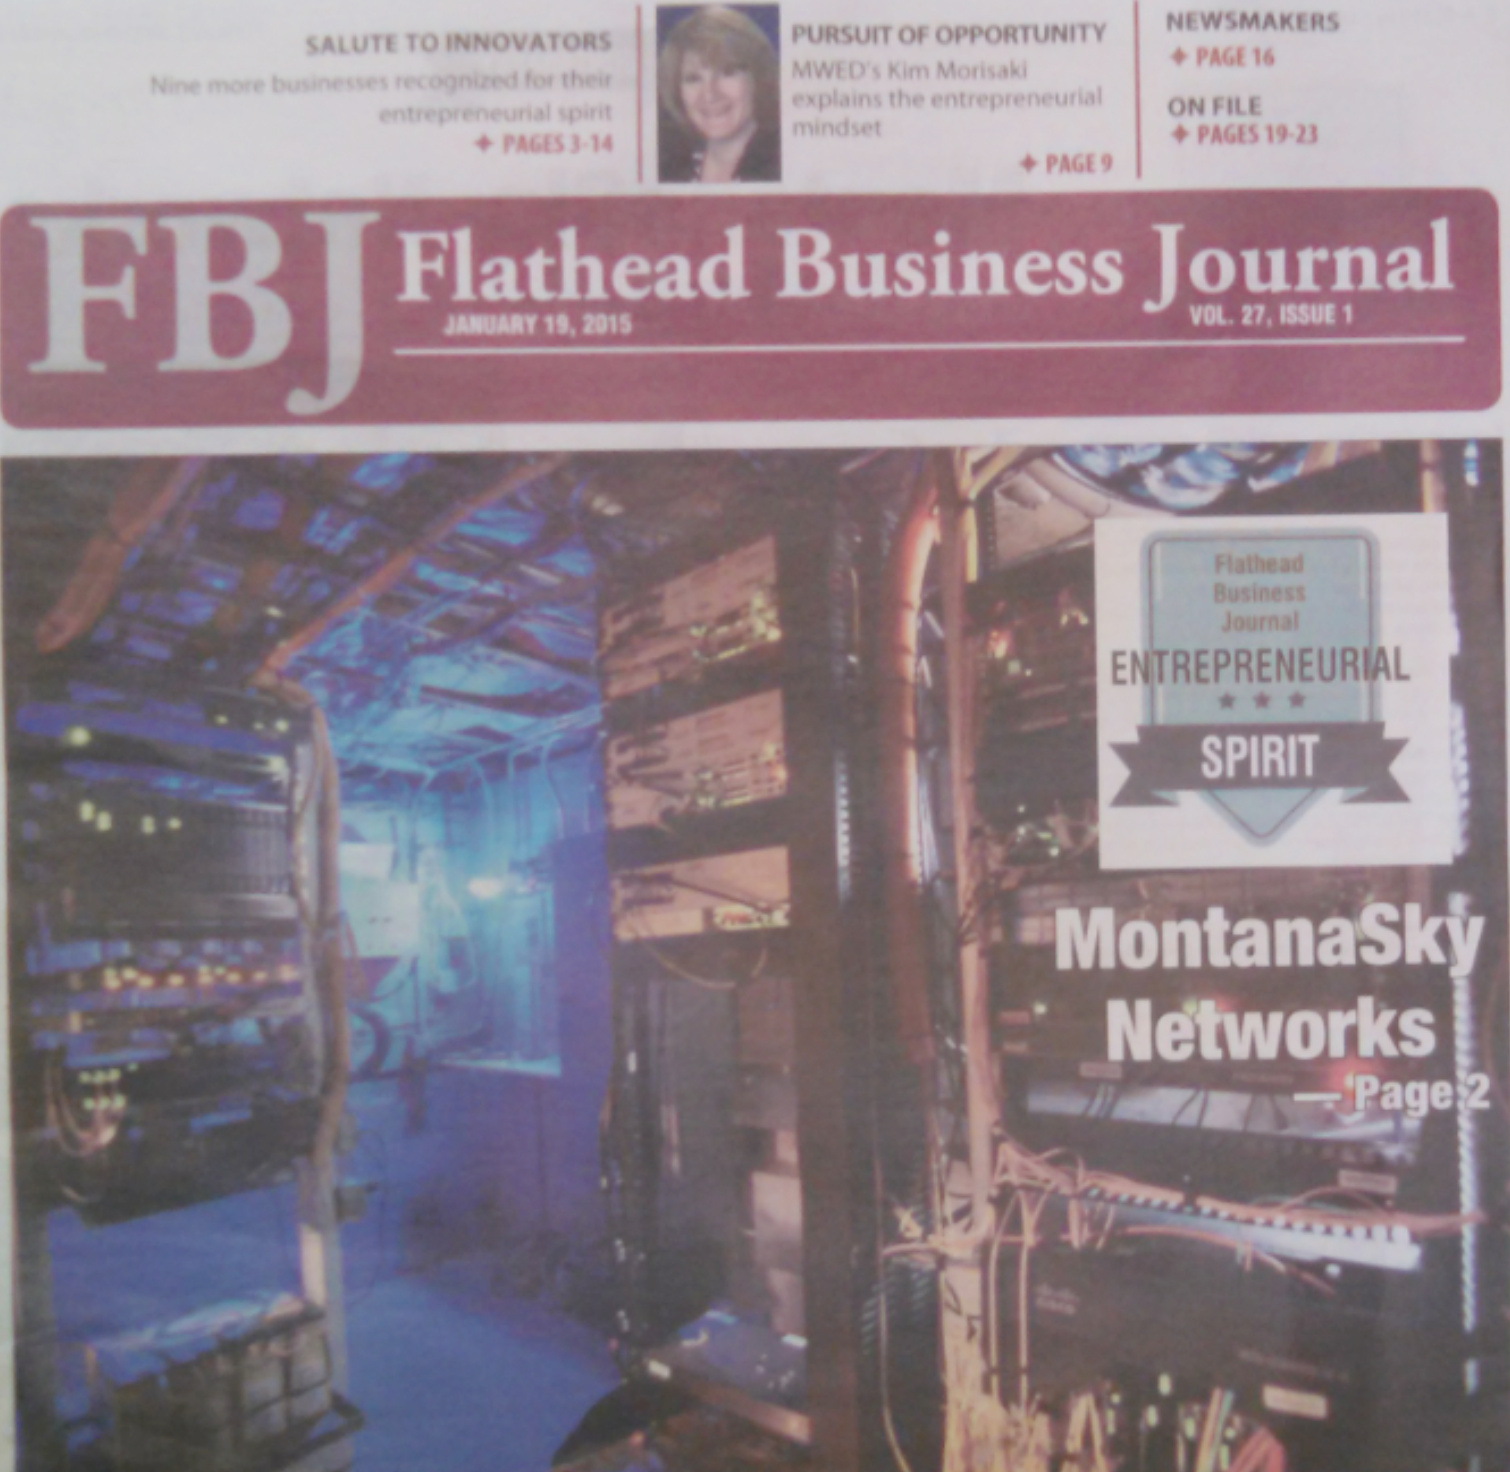 Flathead Business Journal